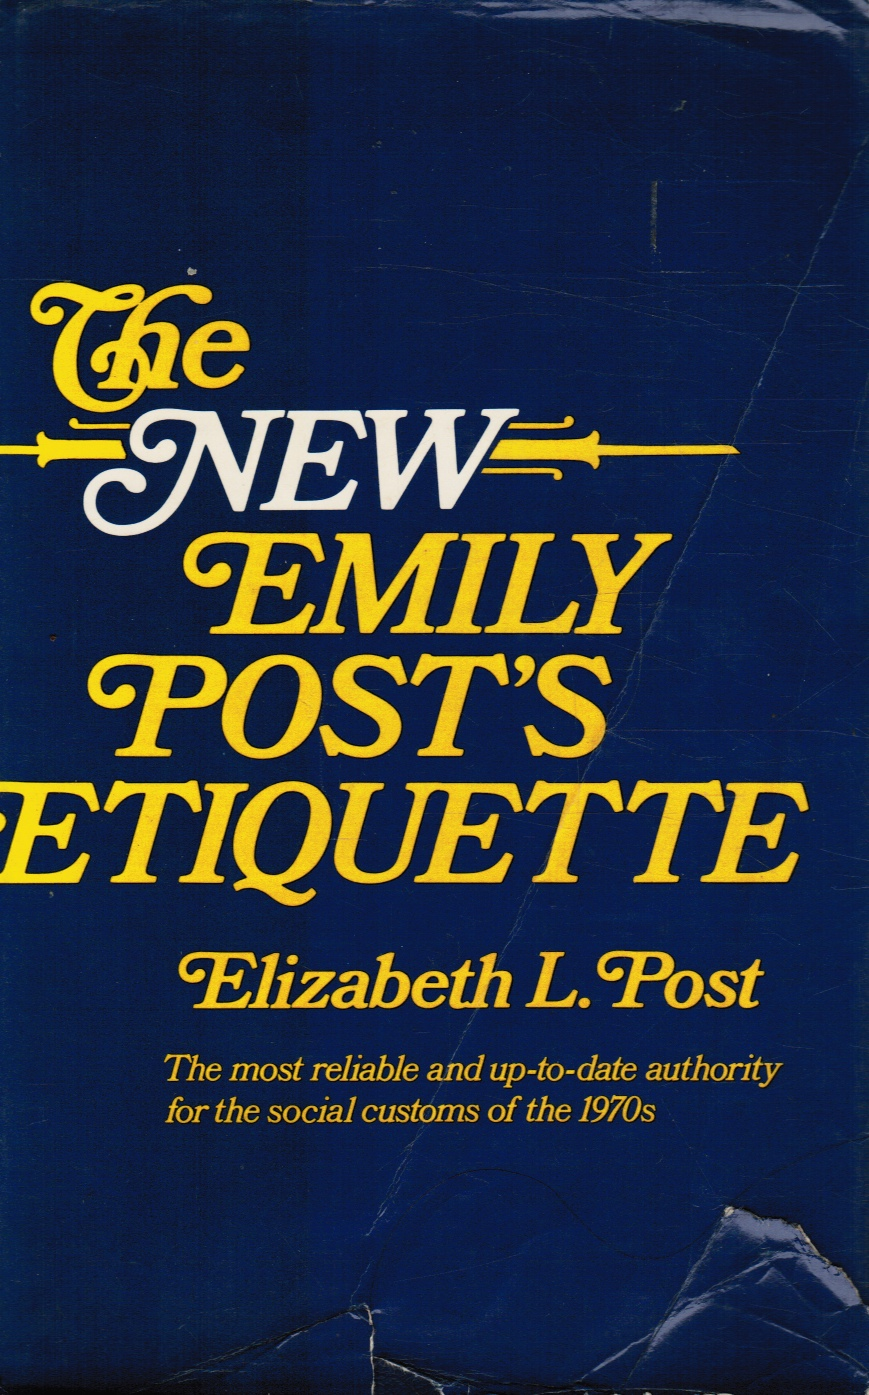 Image for The new Emily Post's Etiquette